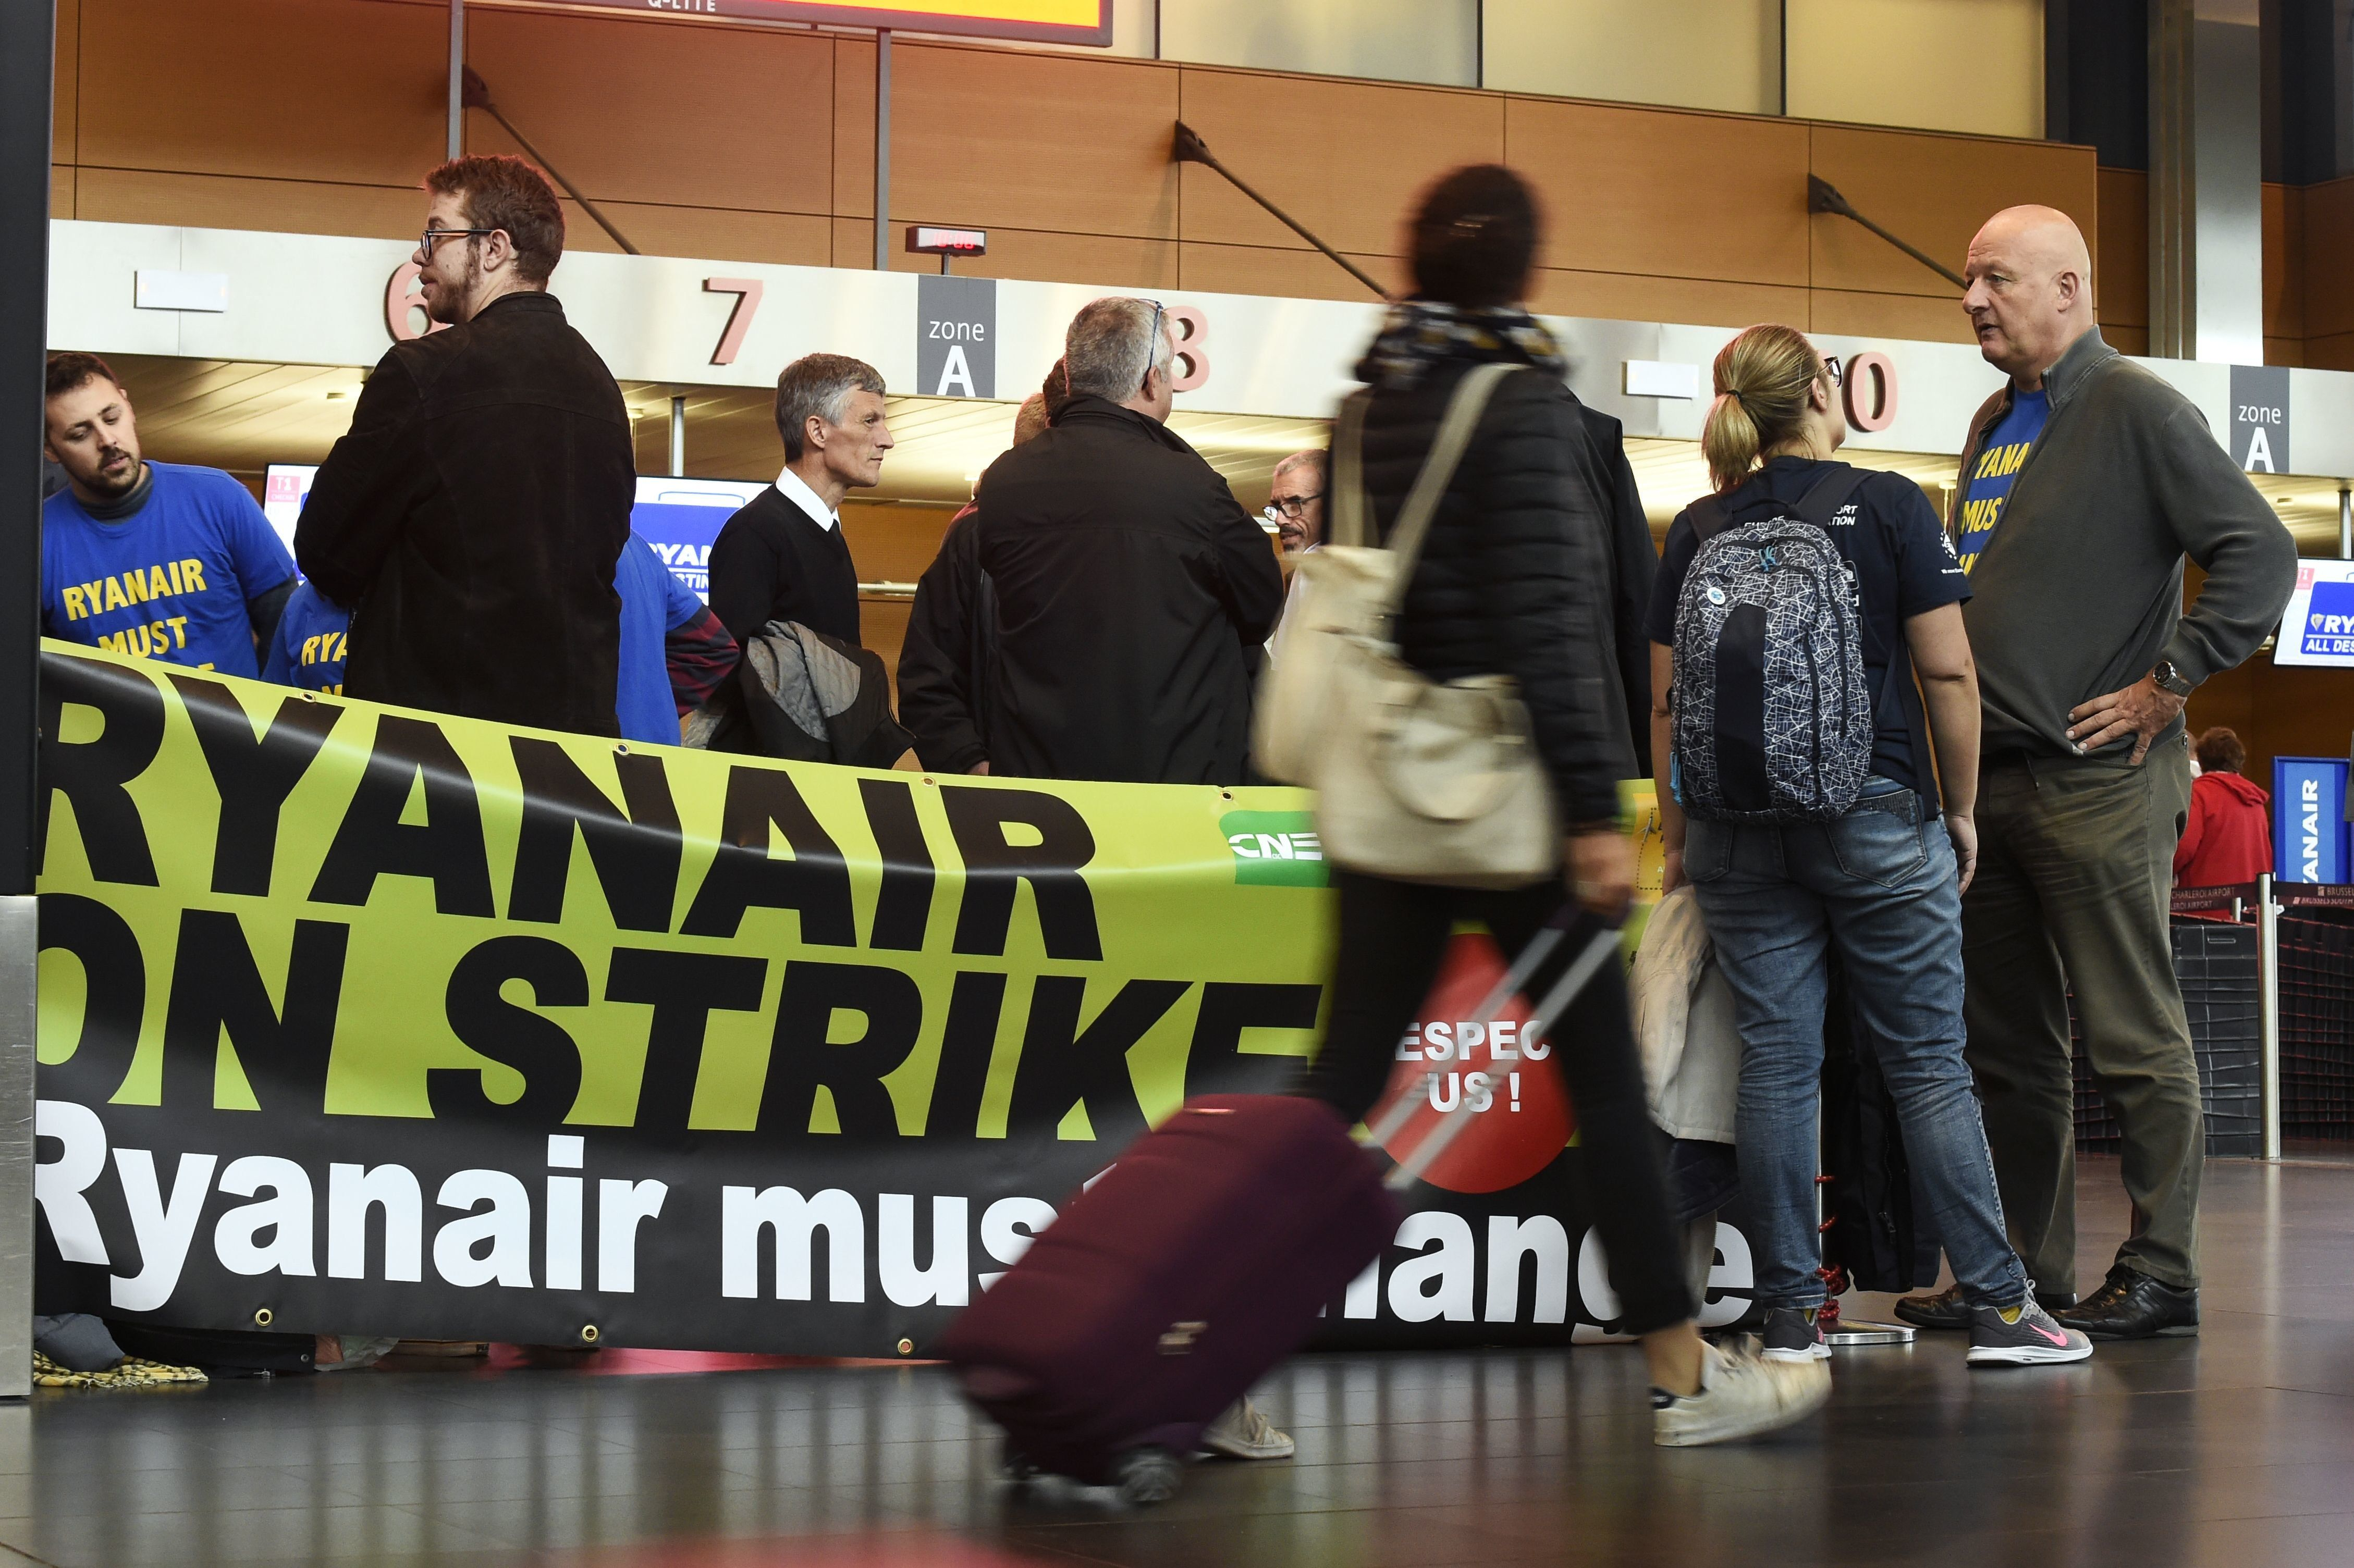 Workers striking at a Brussels airport last